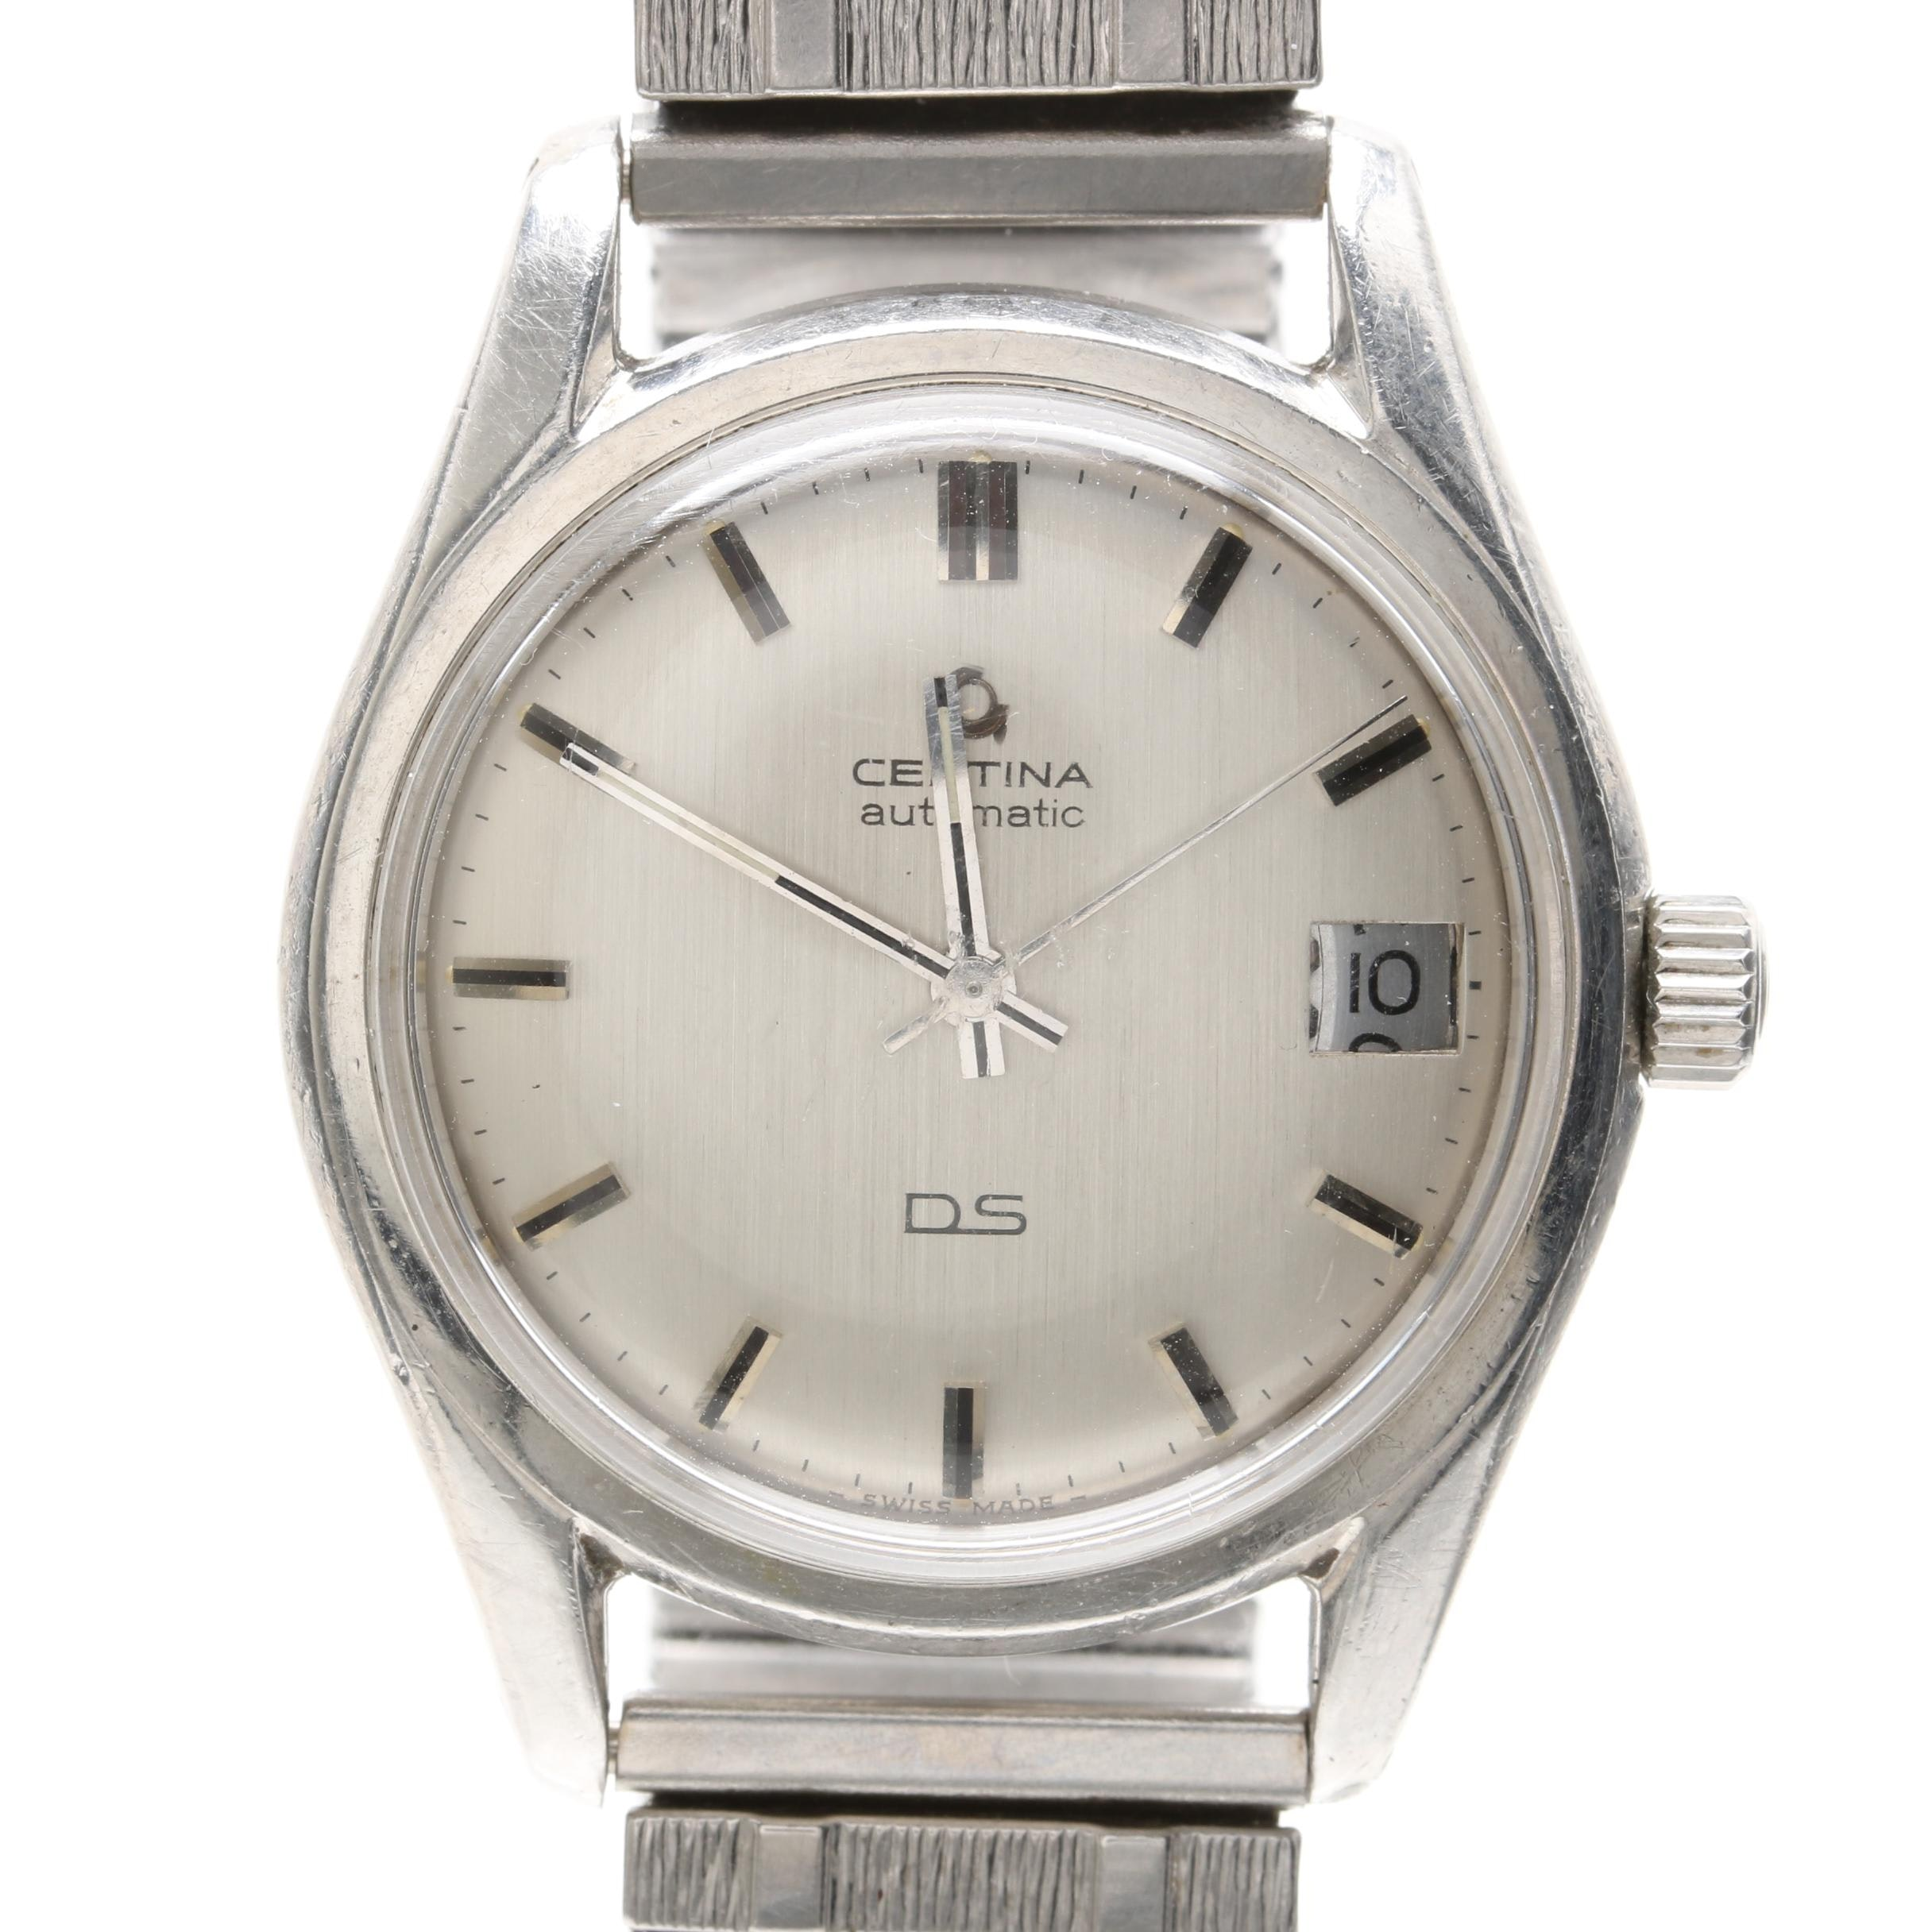 """Certina """"Double Security"""" Stainless Steel Wristwatch"""